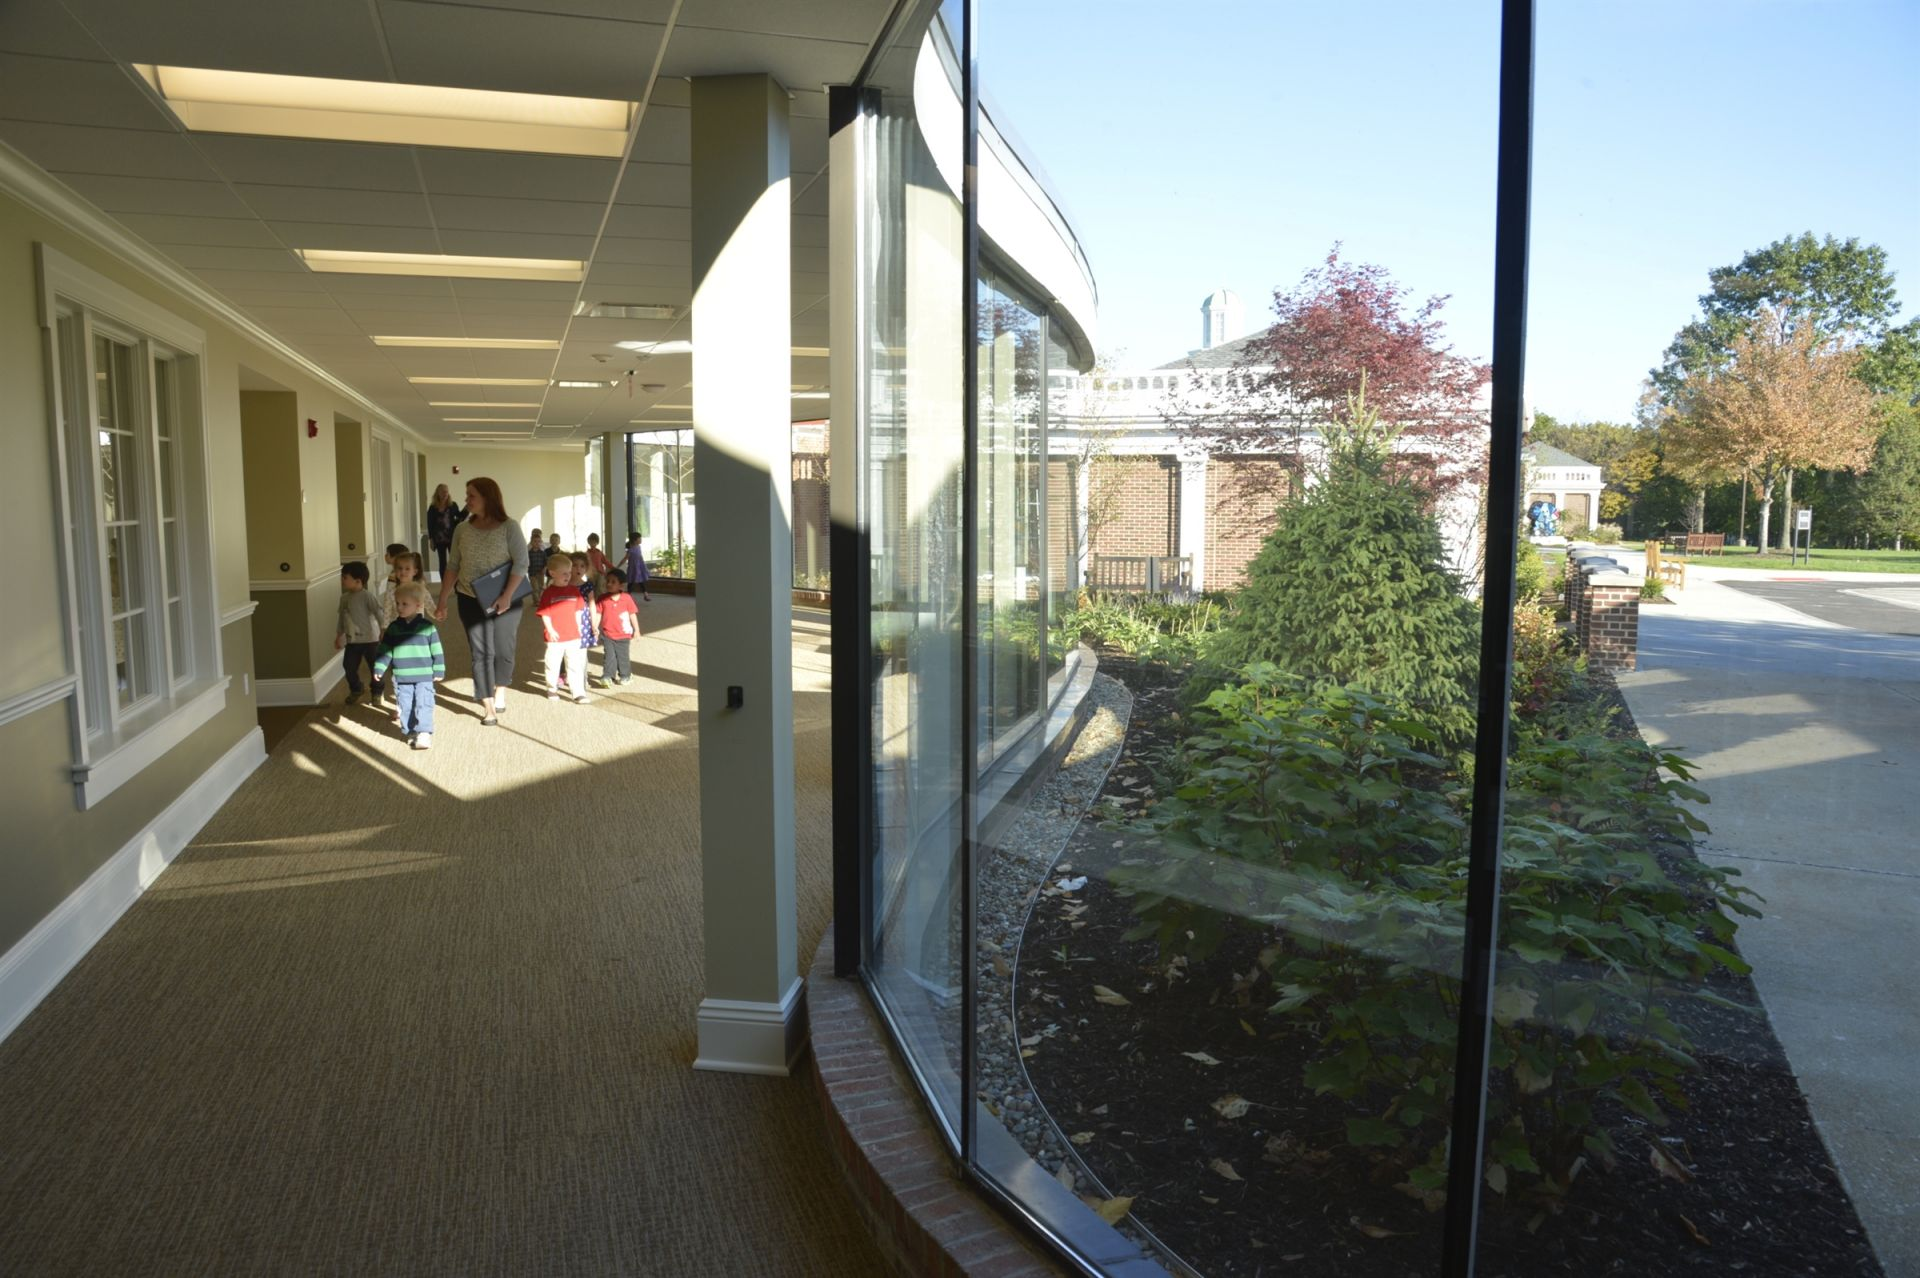 The Musical Arts Center hallway looks out onto the White Family Memorial Garden.